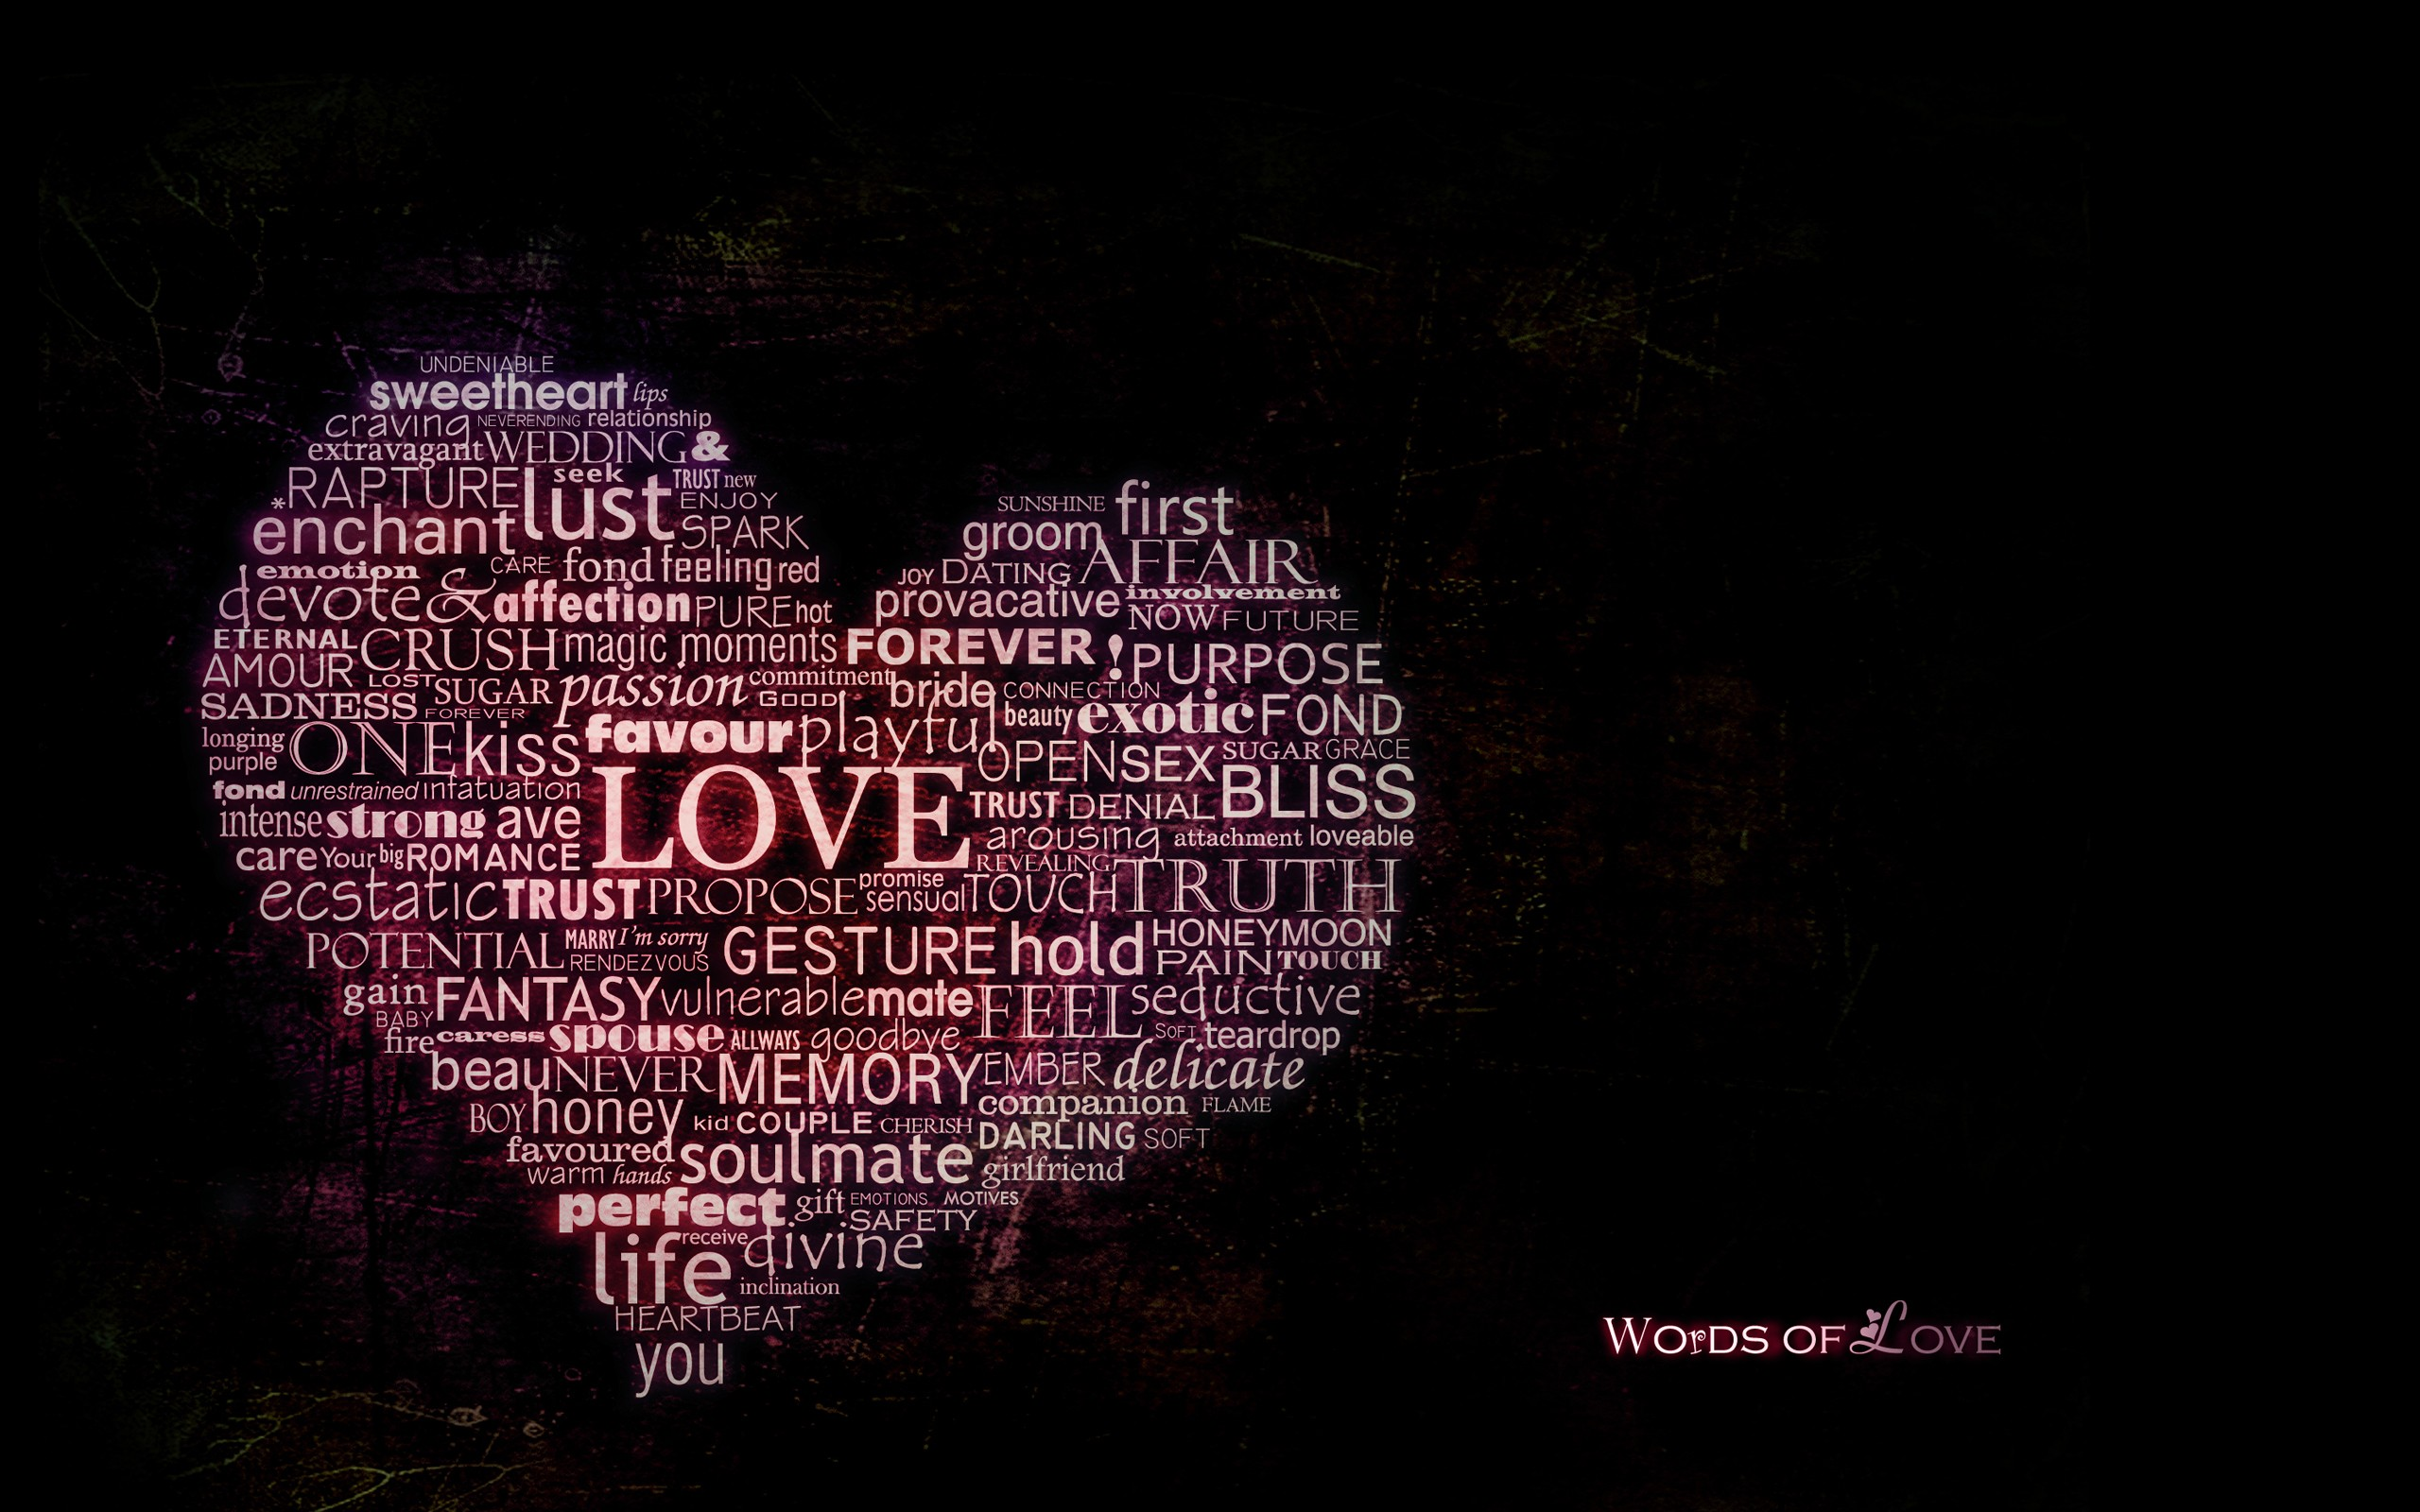 Words of love in the form of heart